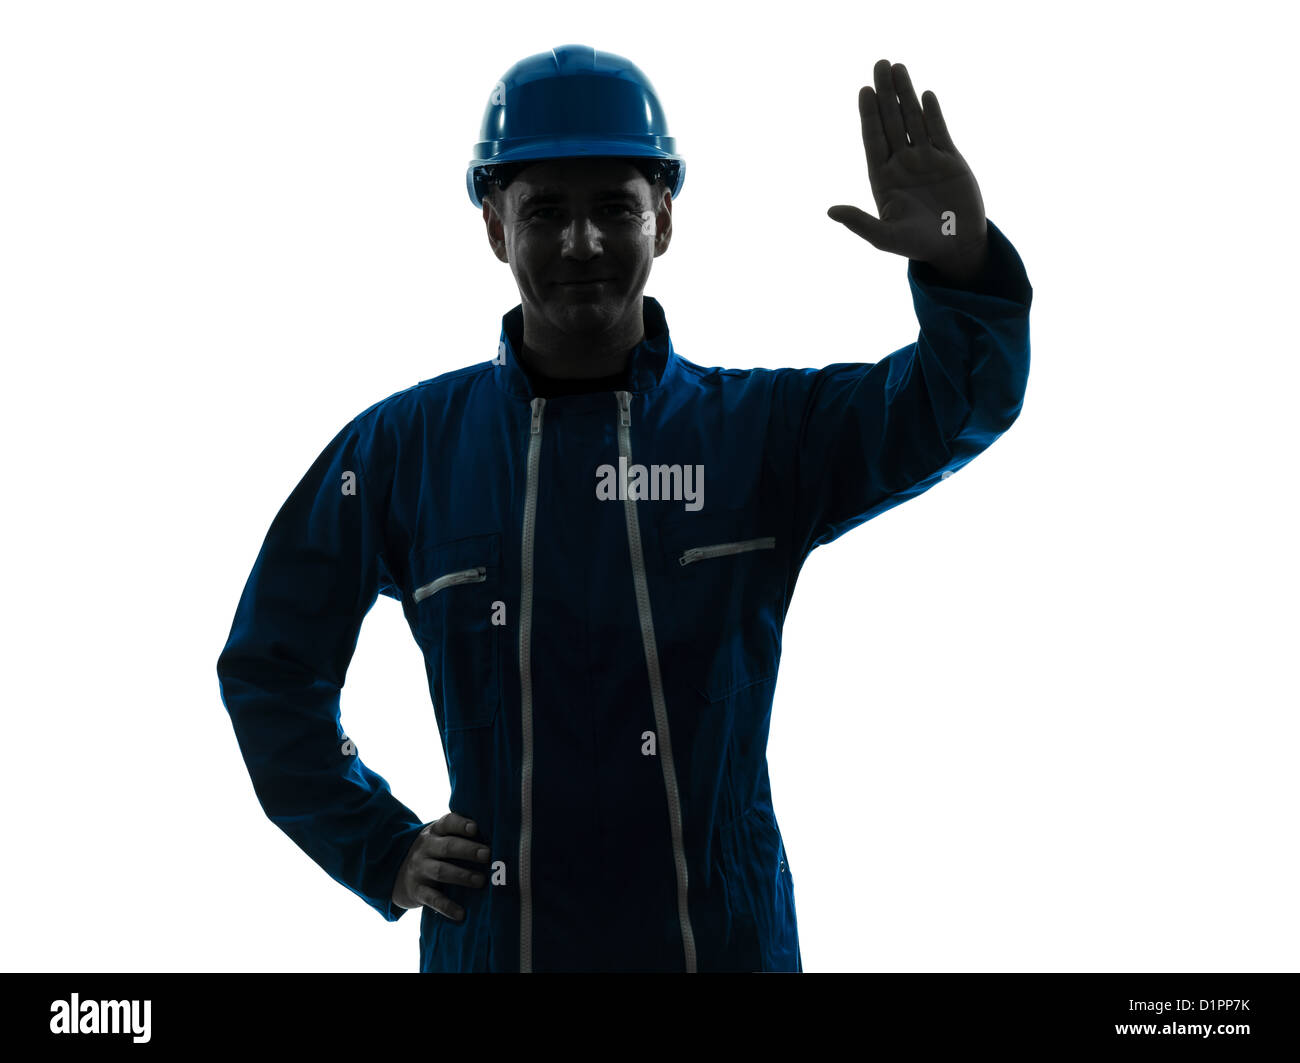 one  man construction worker saluting smiling silhouette portrait in studio on white background - Stock Image